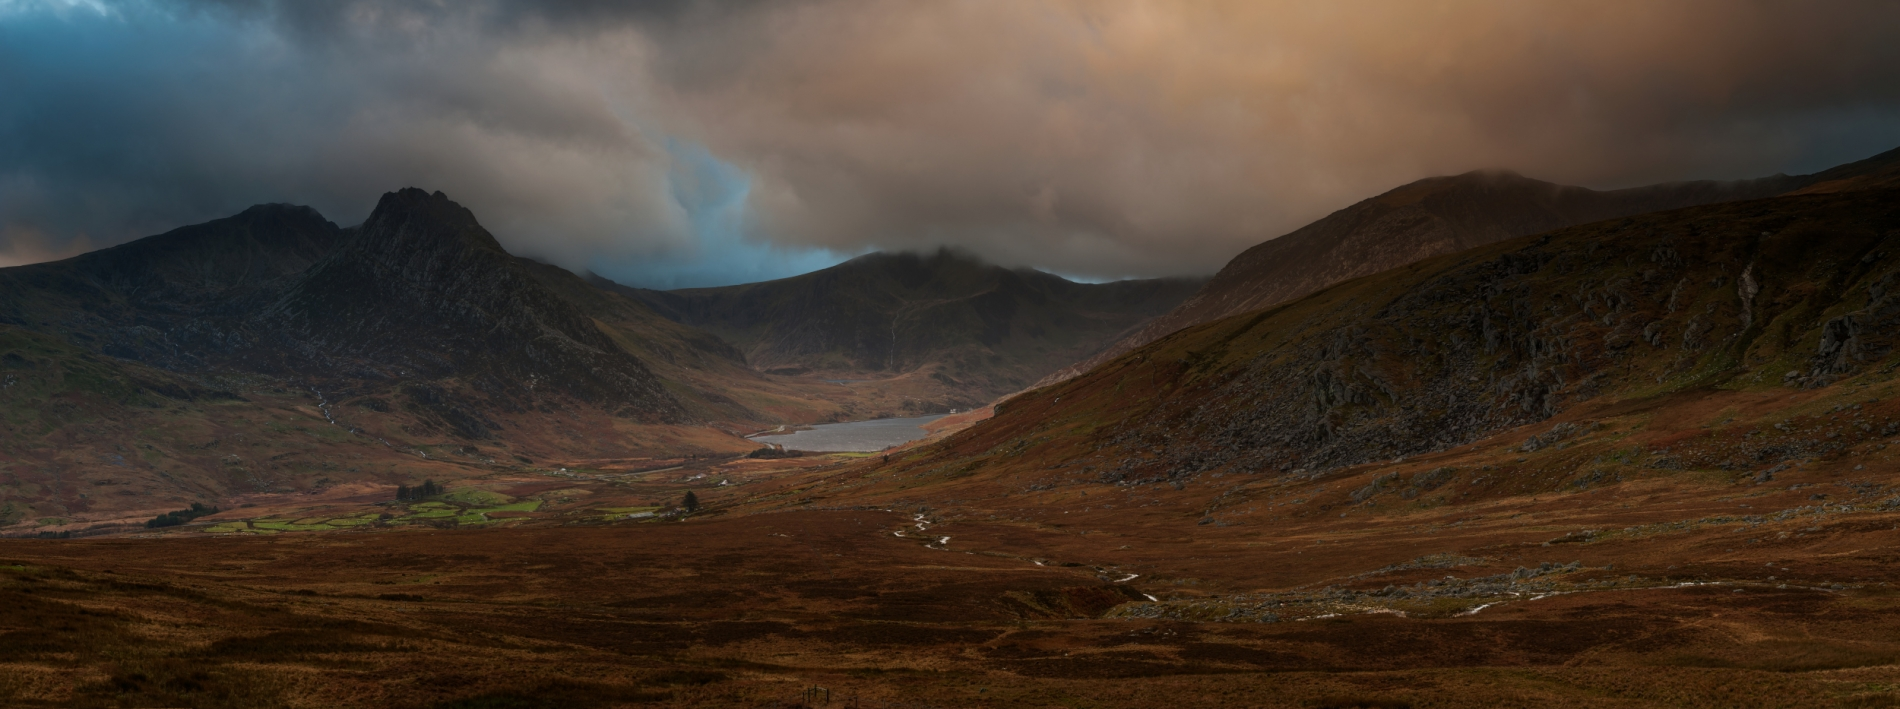 Panoramic Landscape Photography Gallery Buy Canvas Prints